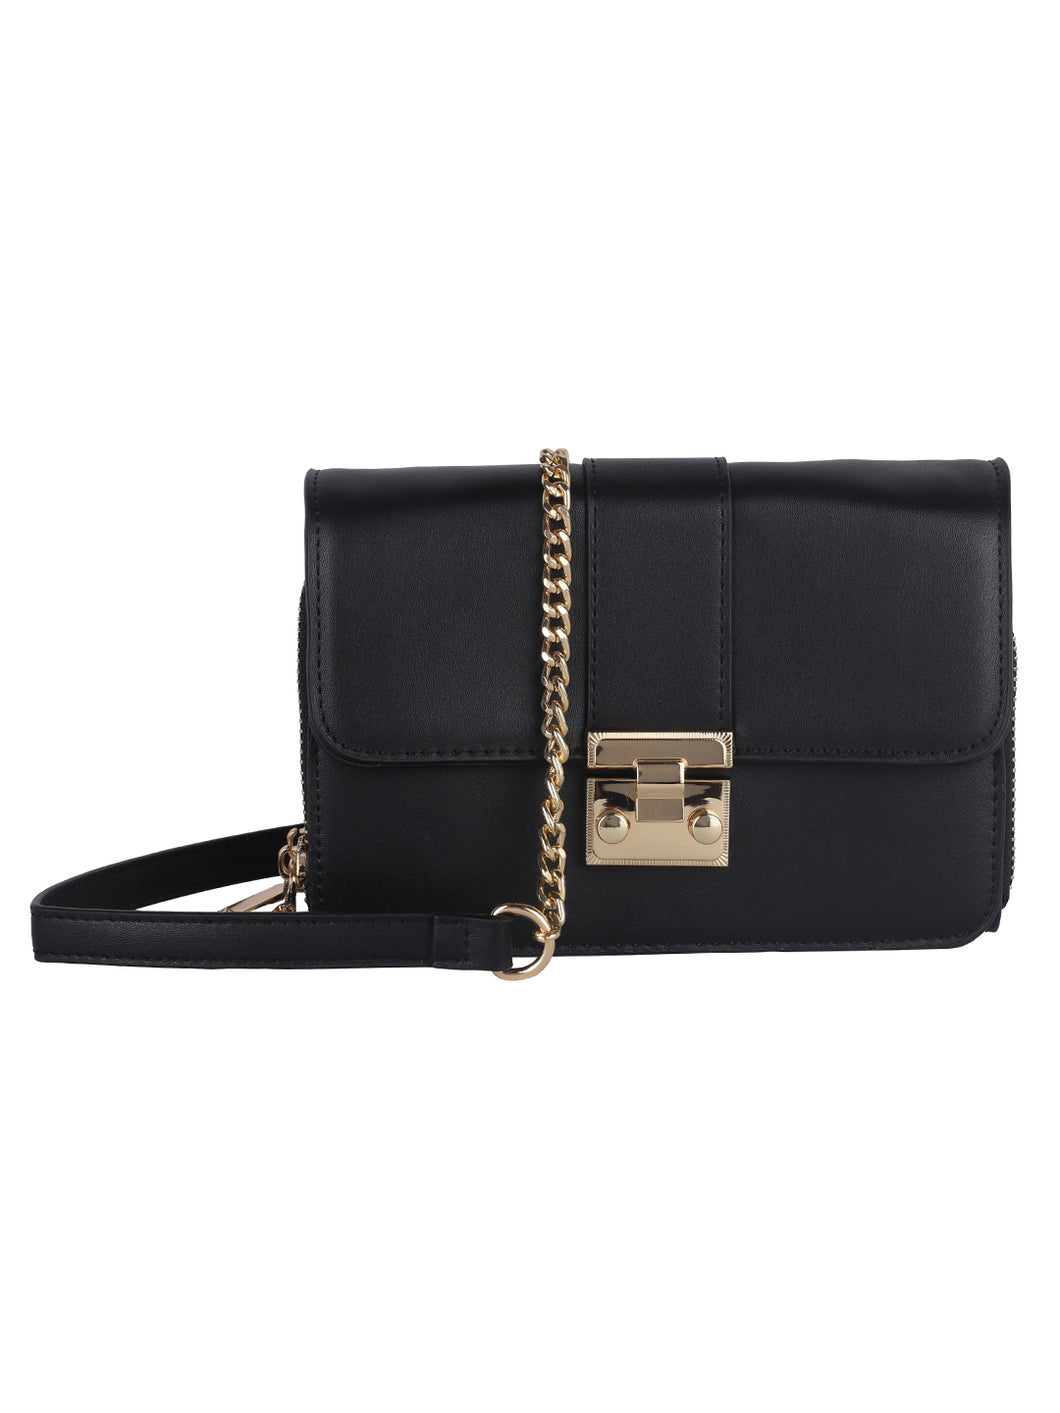 Neutrals Sophisticated Sling - Black